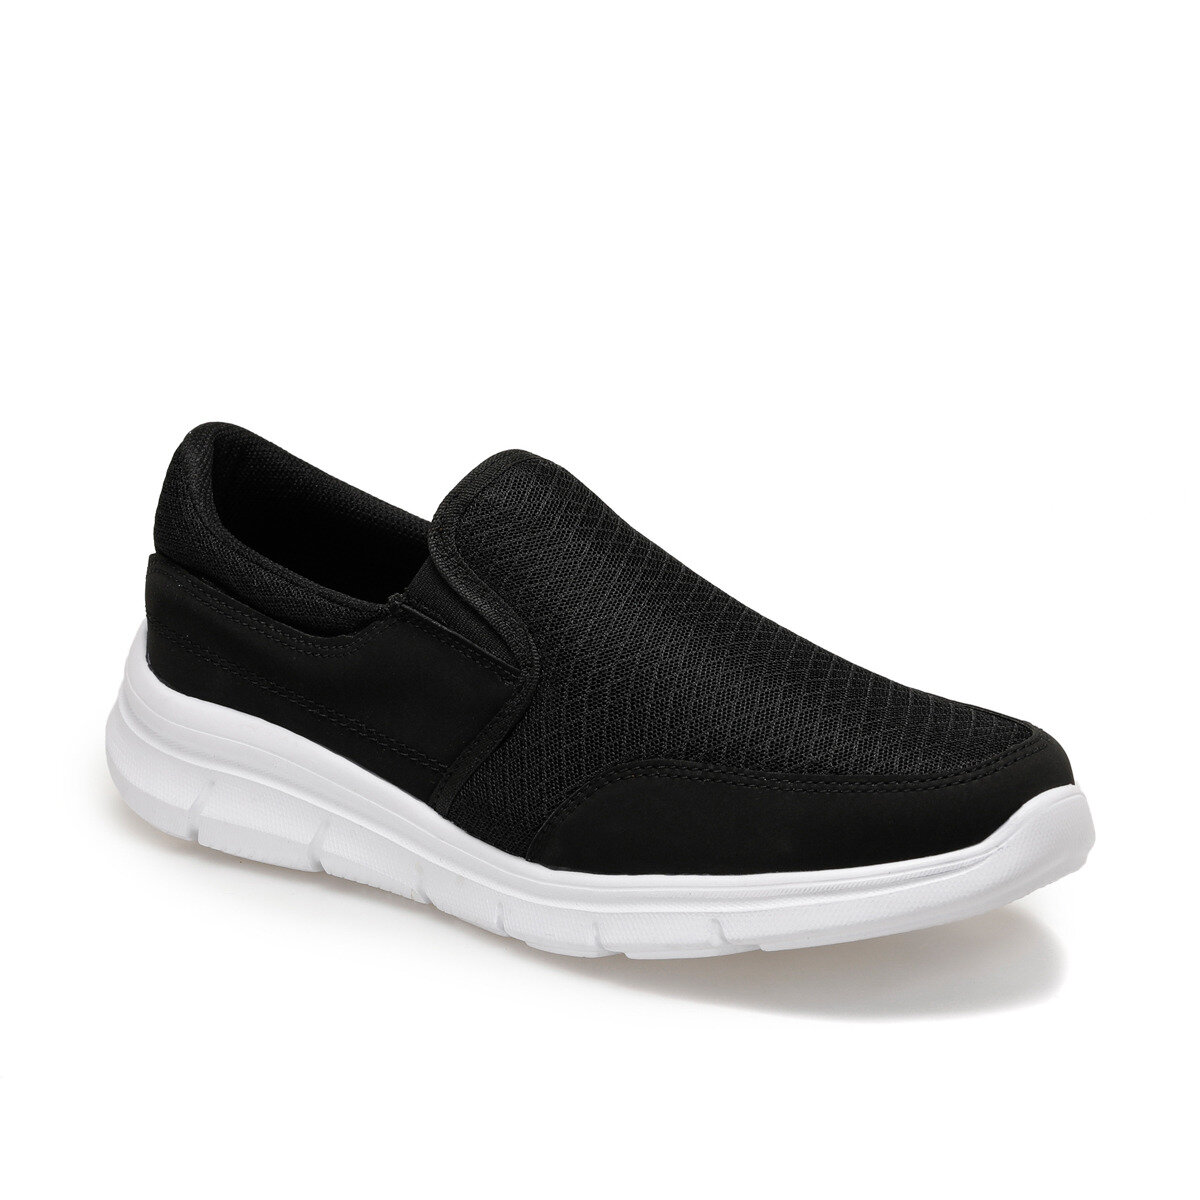 FLO KOBE II Black Men 'S Comfort Shoes Torex